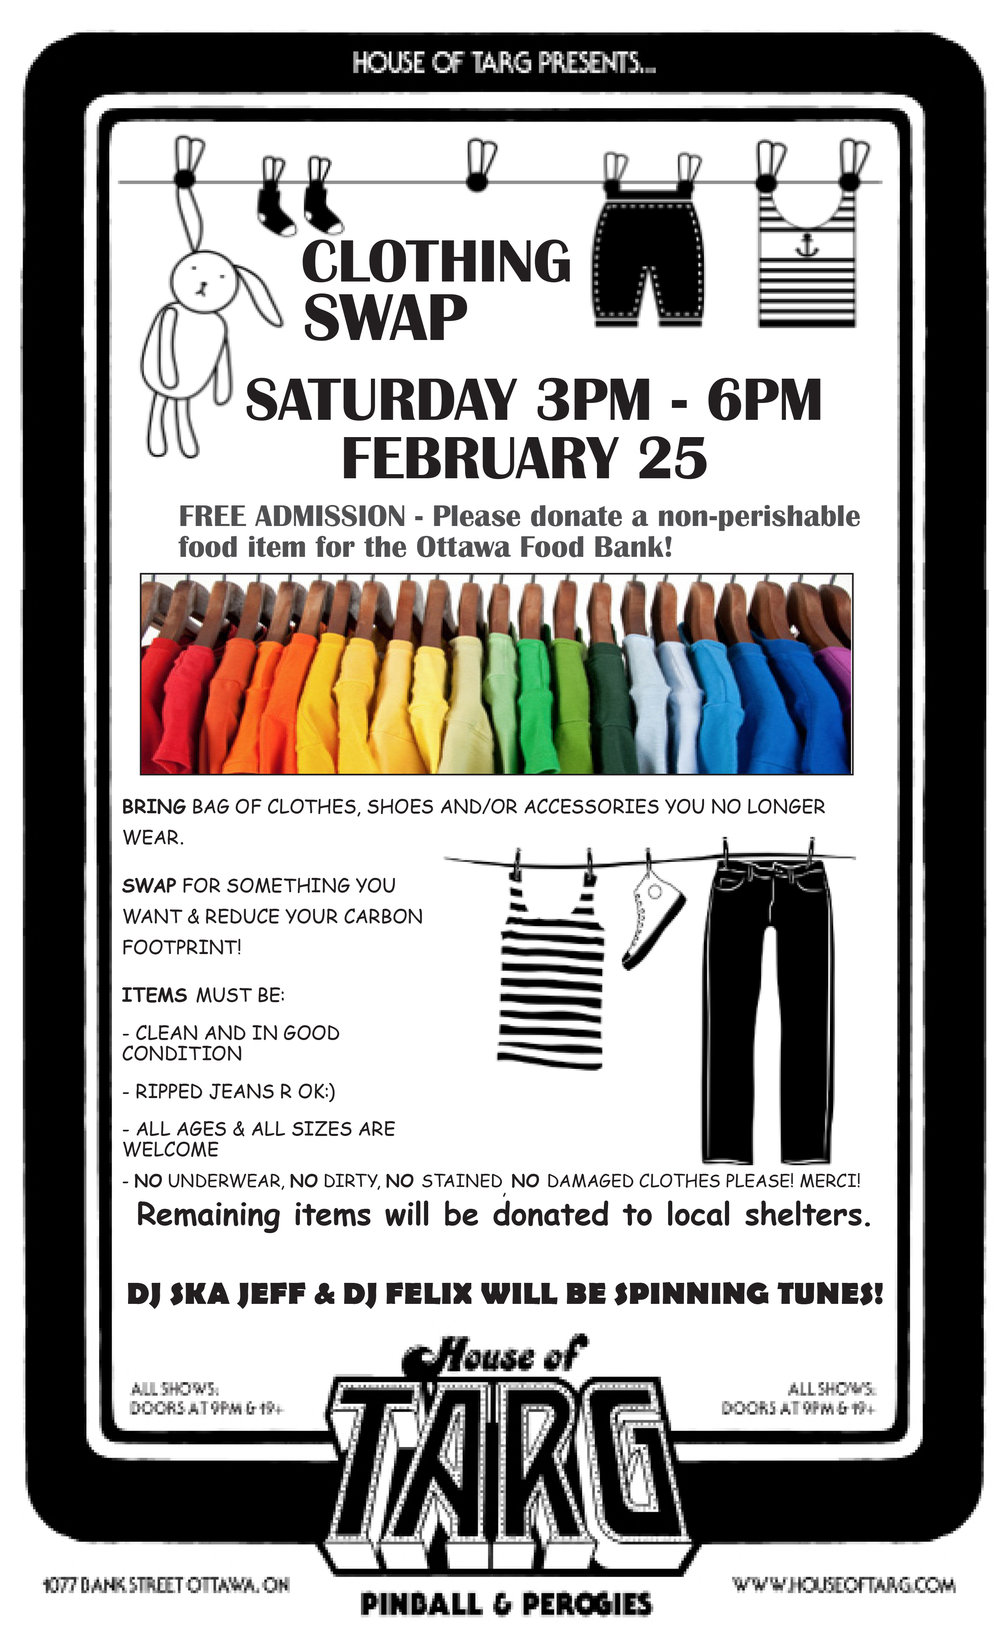 HEY... Don't forget about the TARG CLOTHING SWAP  Sat Feb 25 3pm-6pm.  A fun way to reduce your carbon footprint, clear some clutter, get some new duds & support the community!  MORE DETAILS HERE